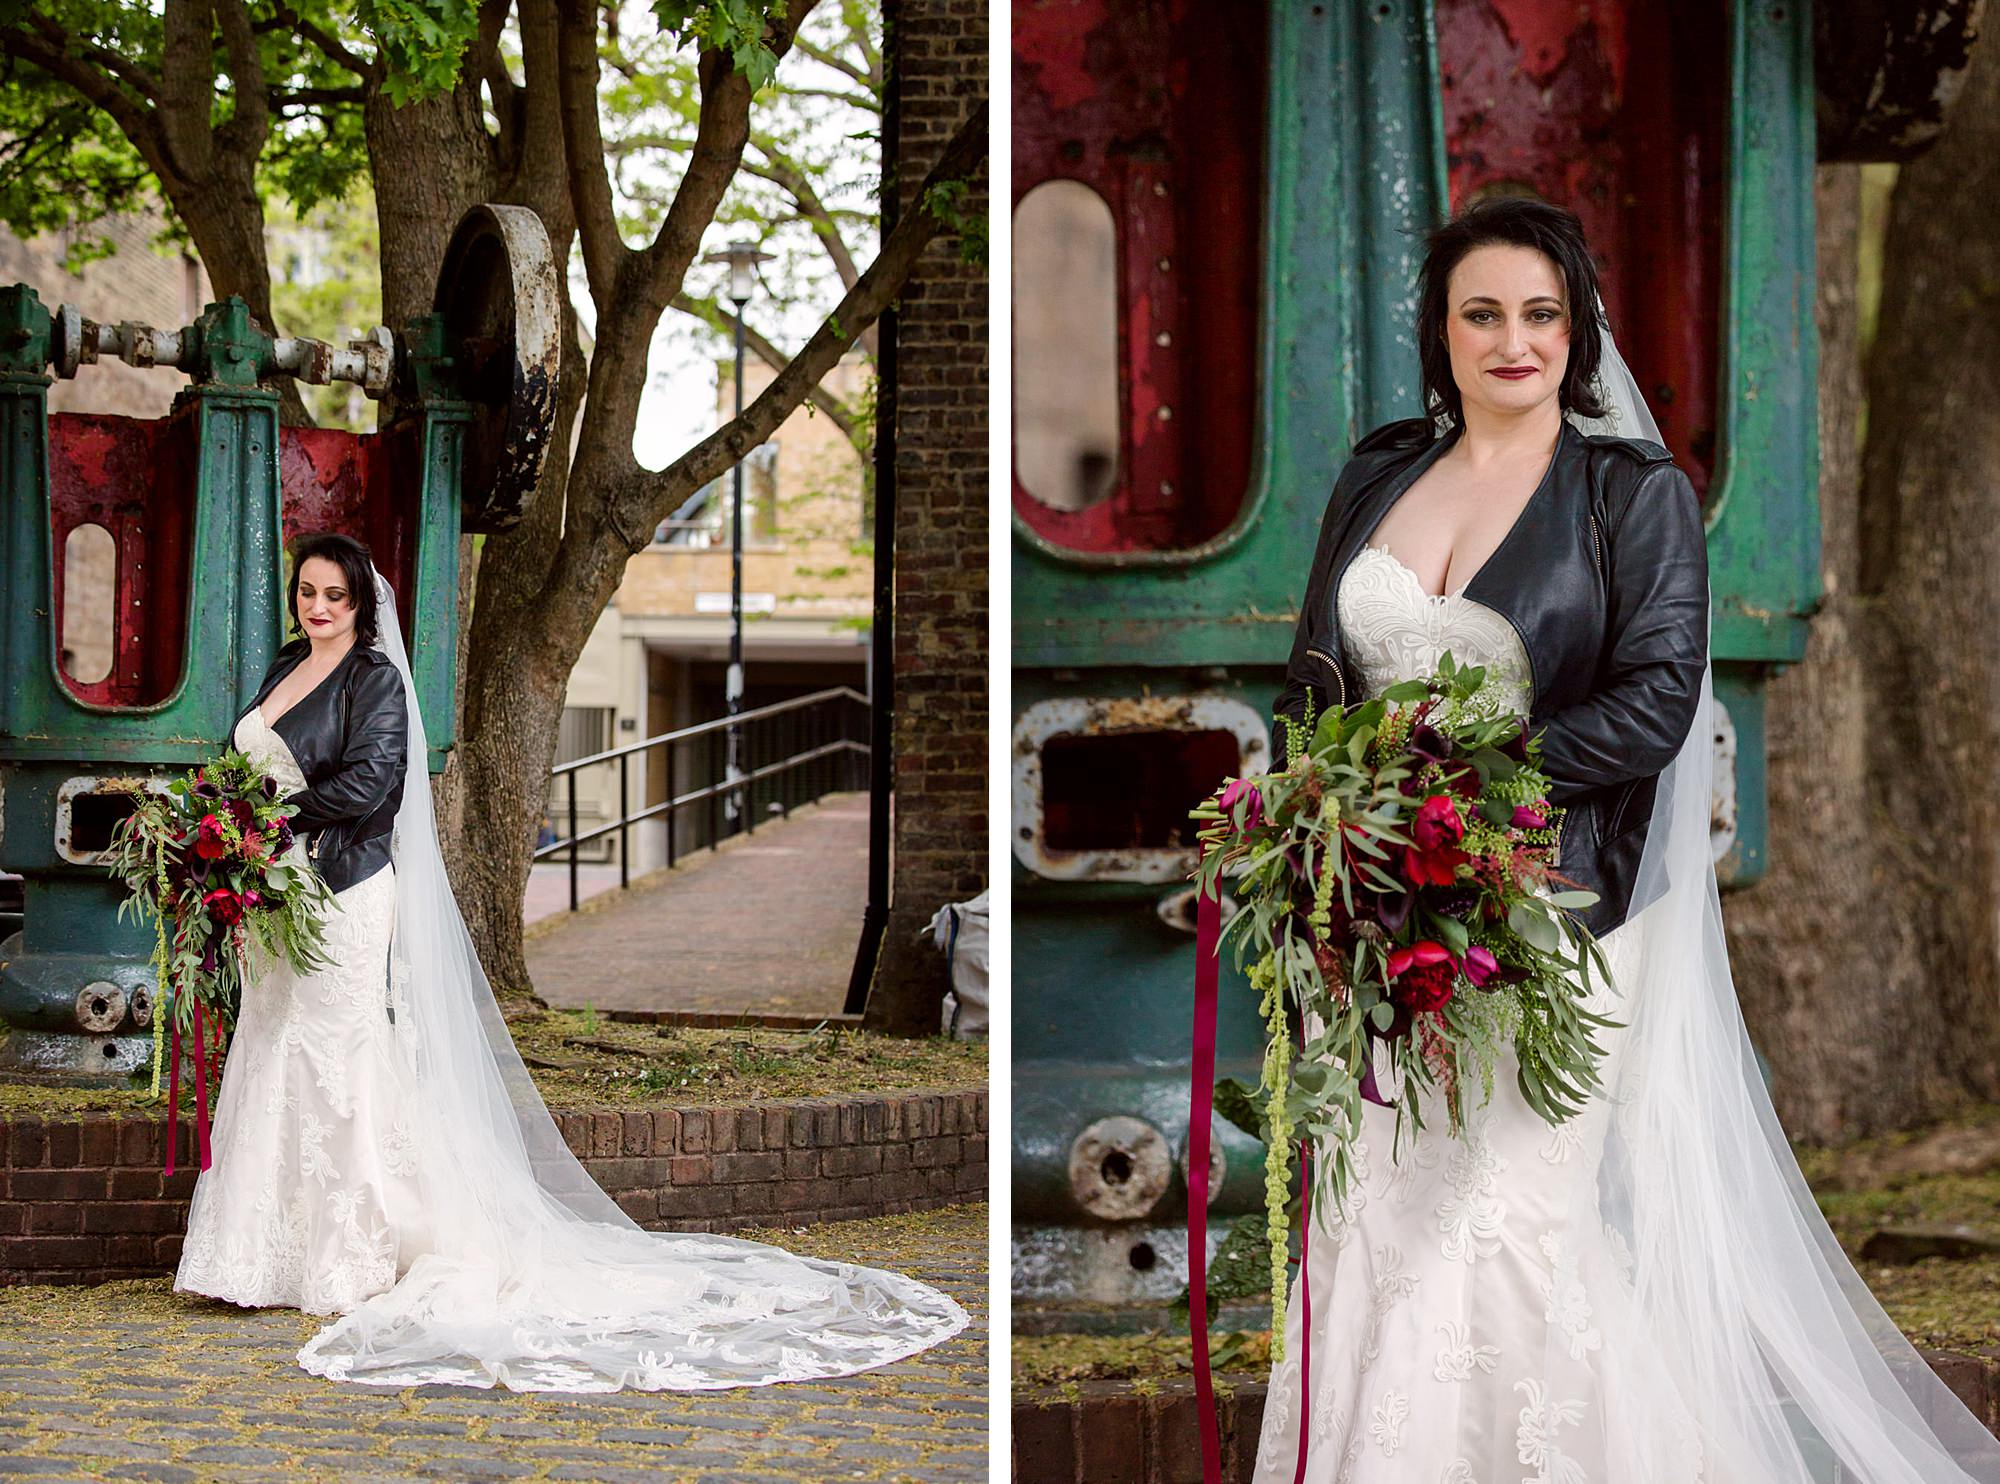 Brunel museum wedding portrait of bride by machinery